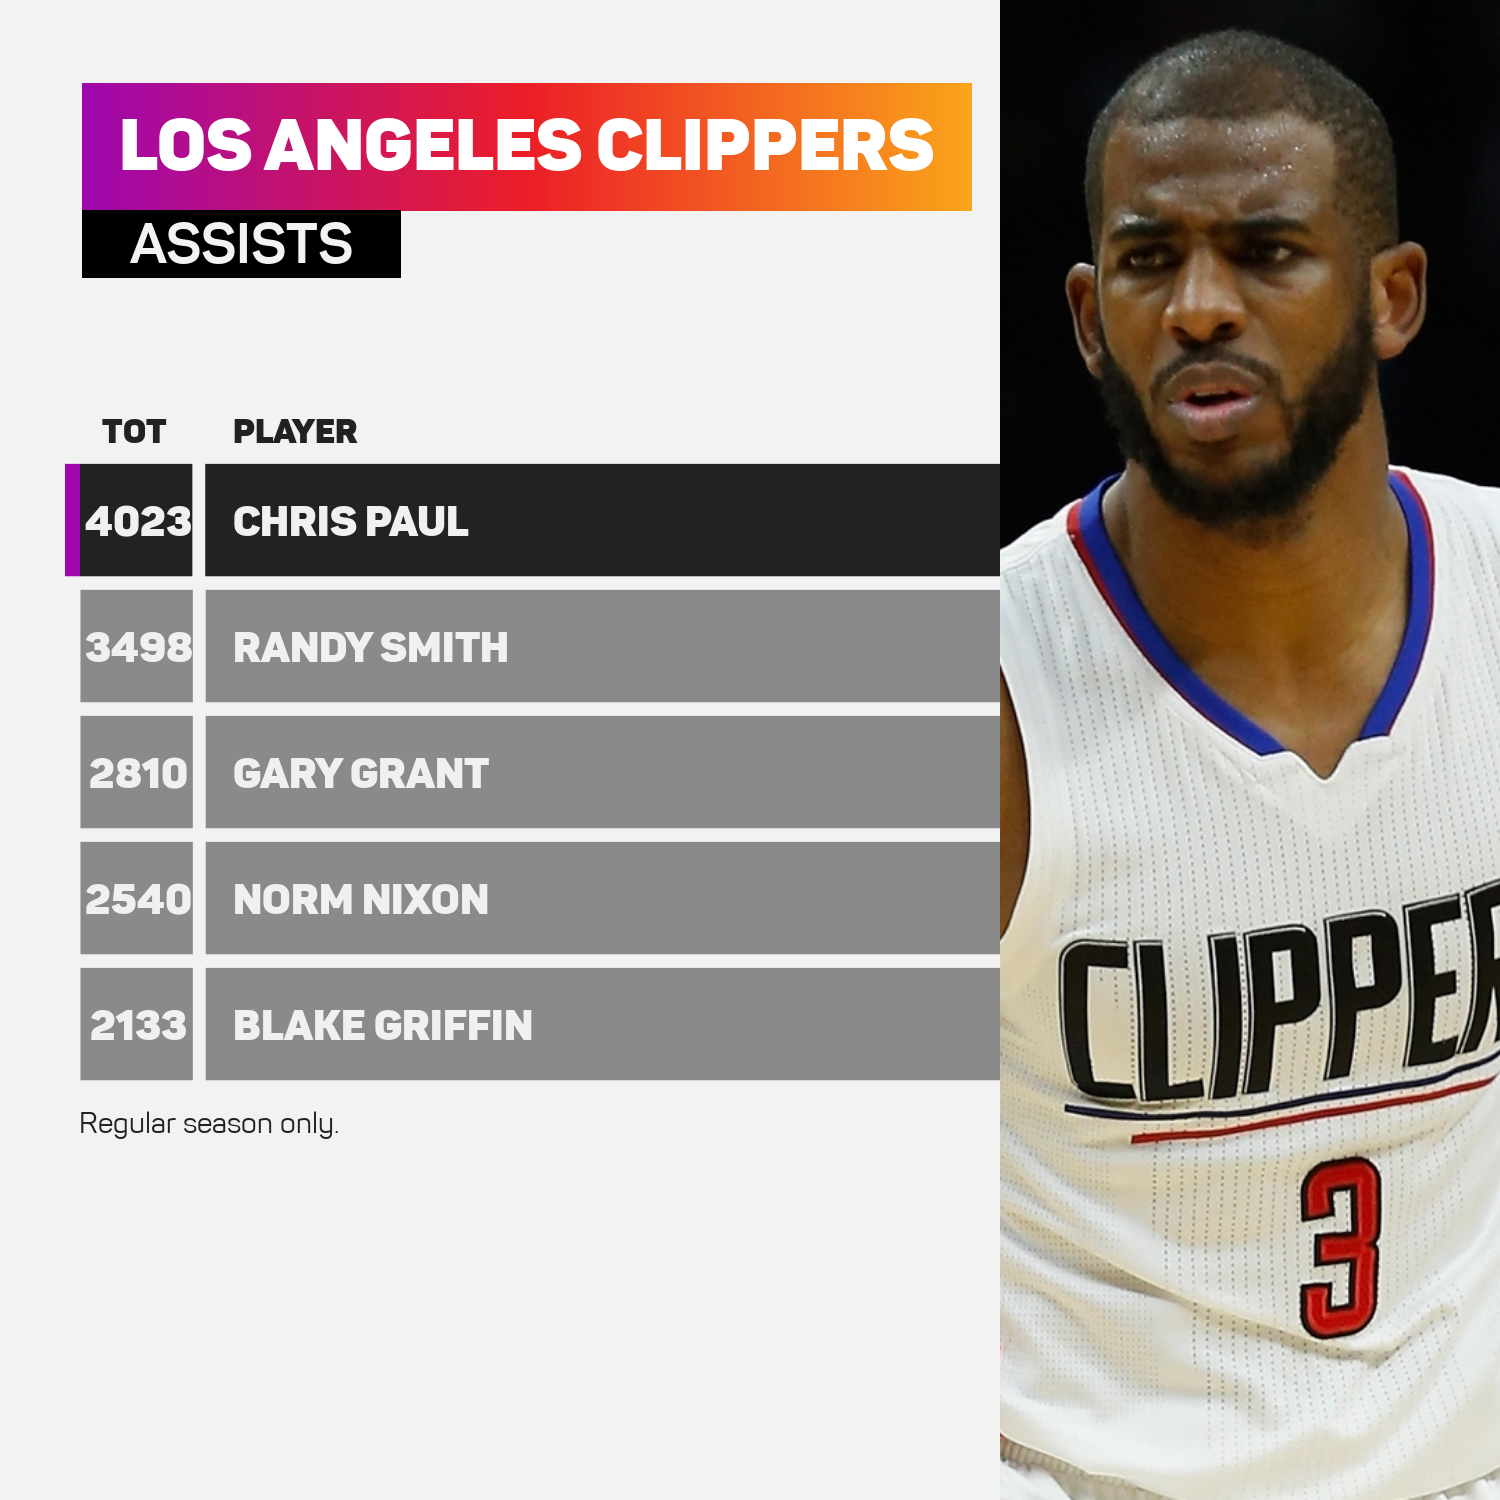 Chris Paul leads the Clippers in assists